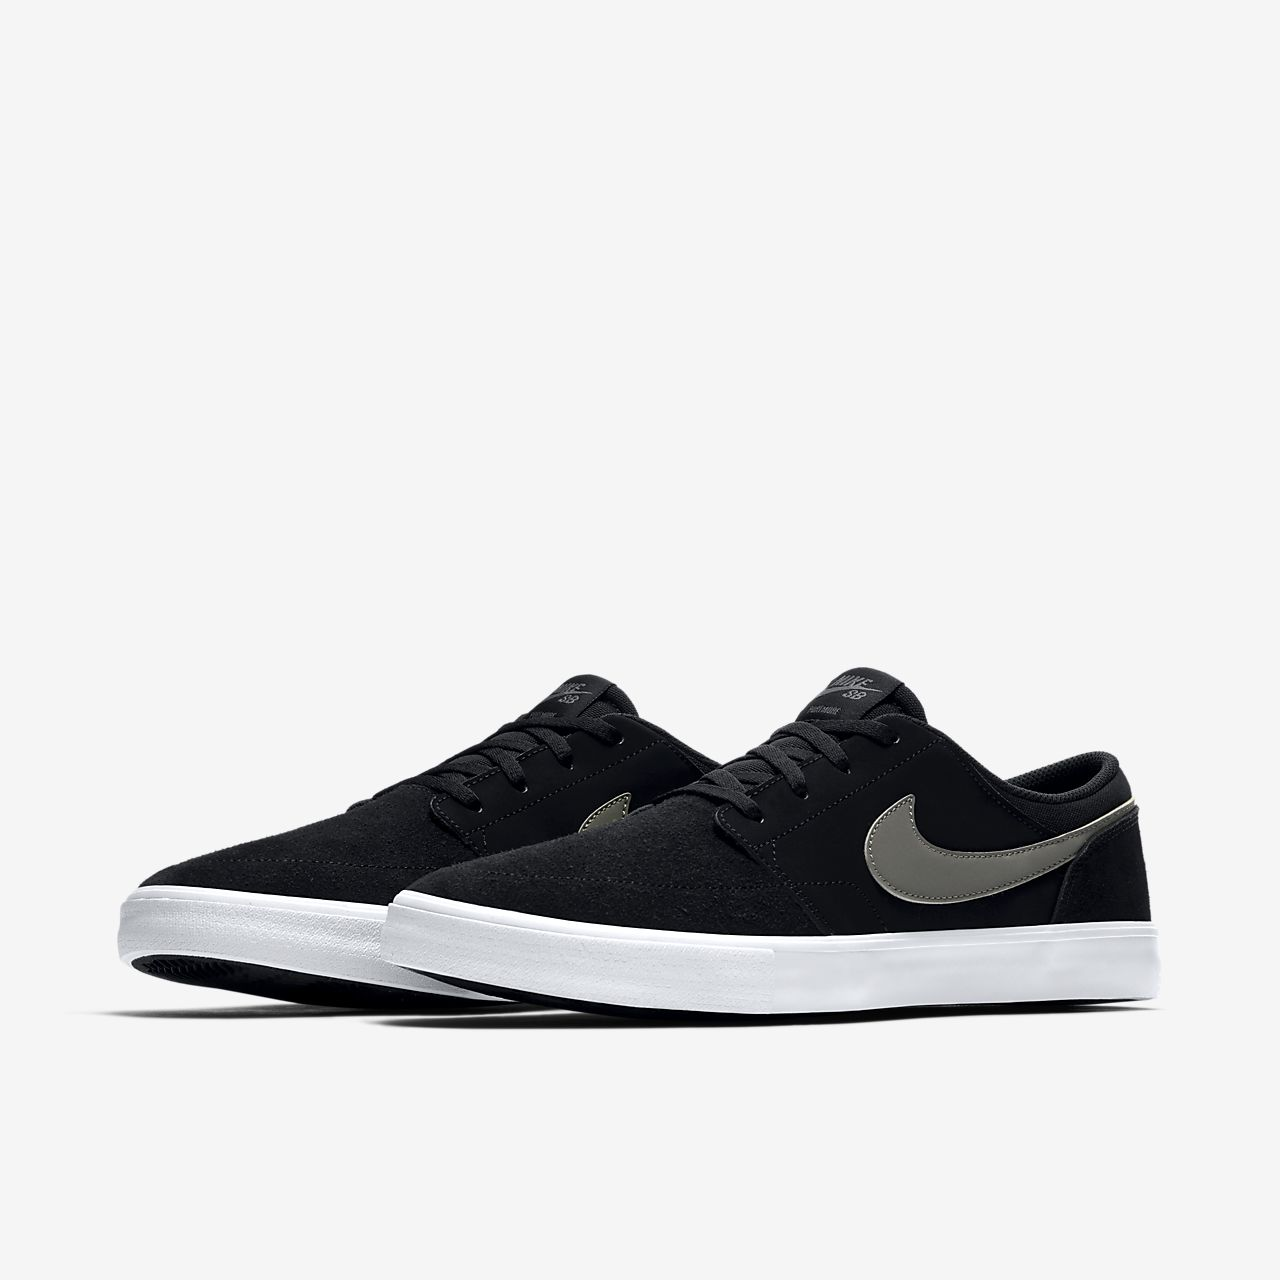 nike sb solarsoft portmore ii men 39 s skateboarding shoe au. Black Bedroom Furniture Sets. Home Design Ideas